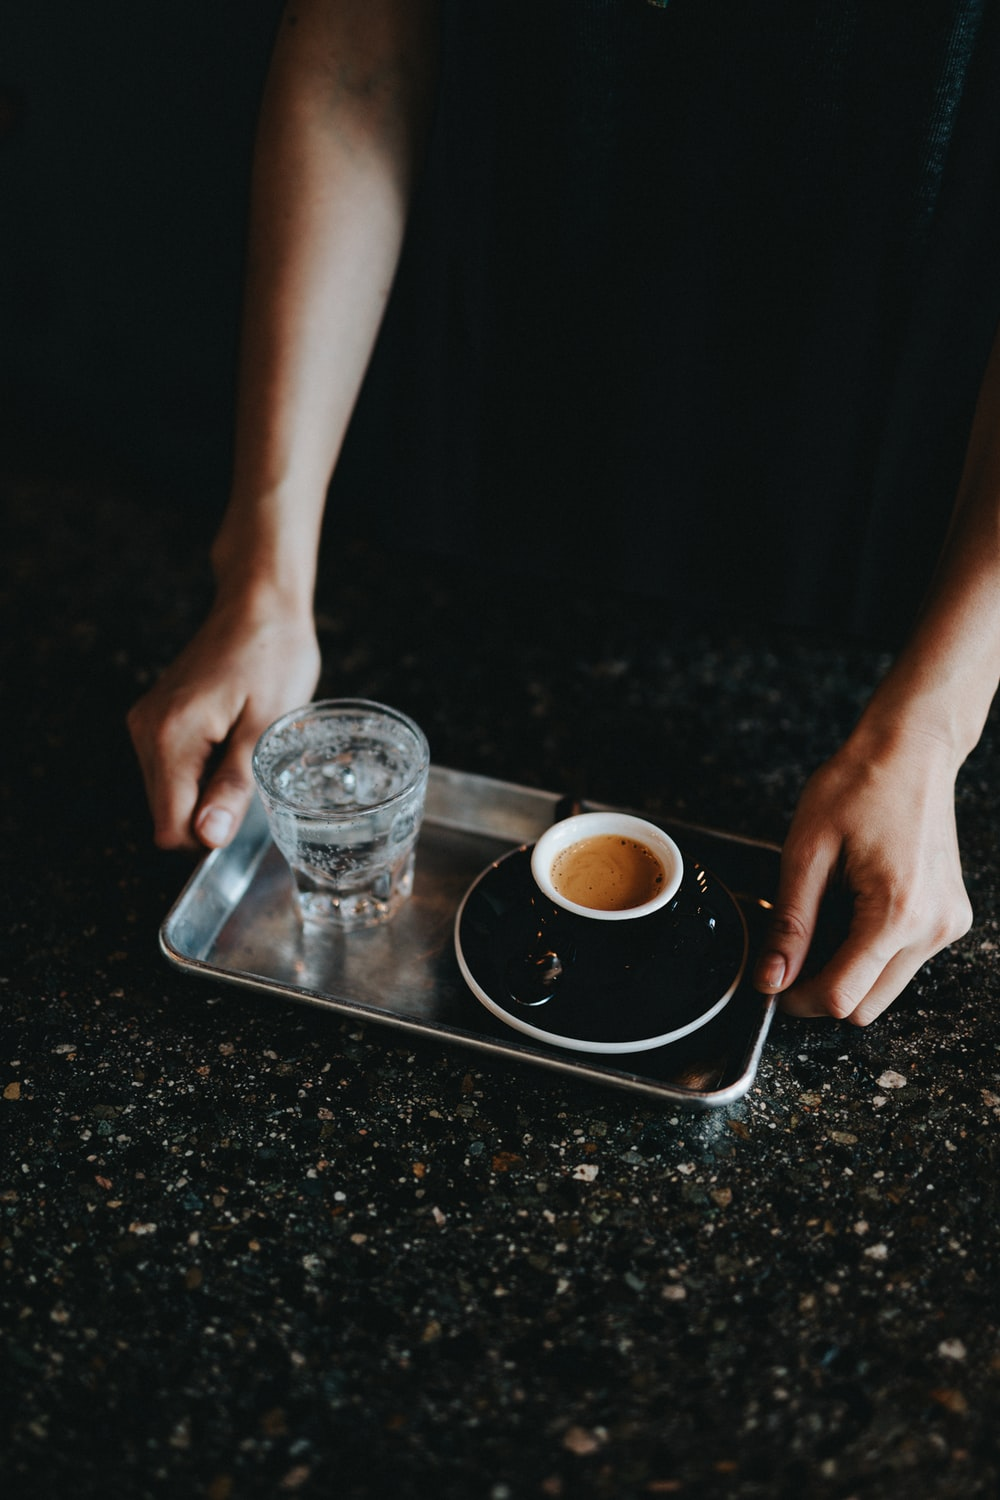 person holding tray with drinking glass and coffee cup